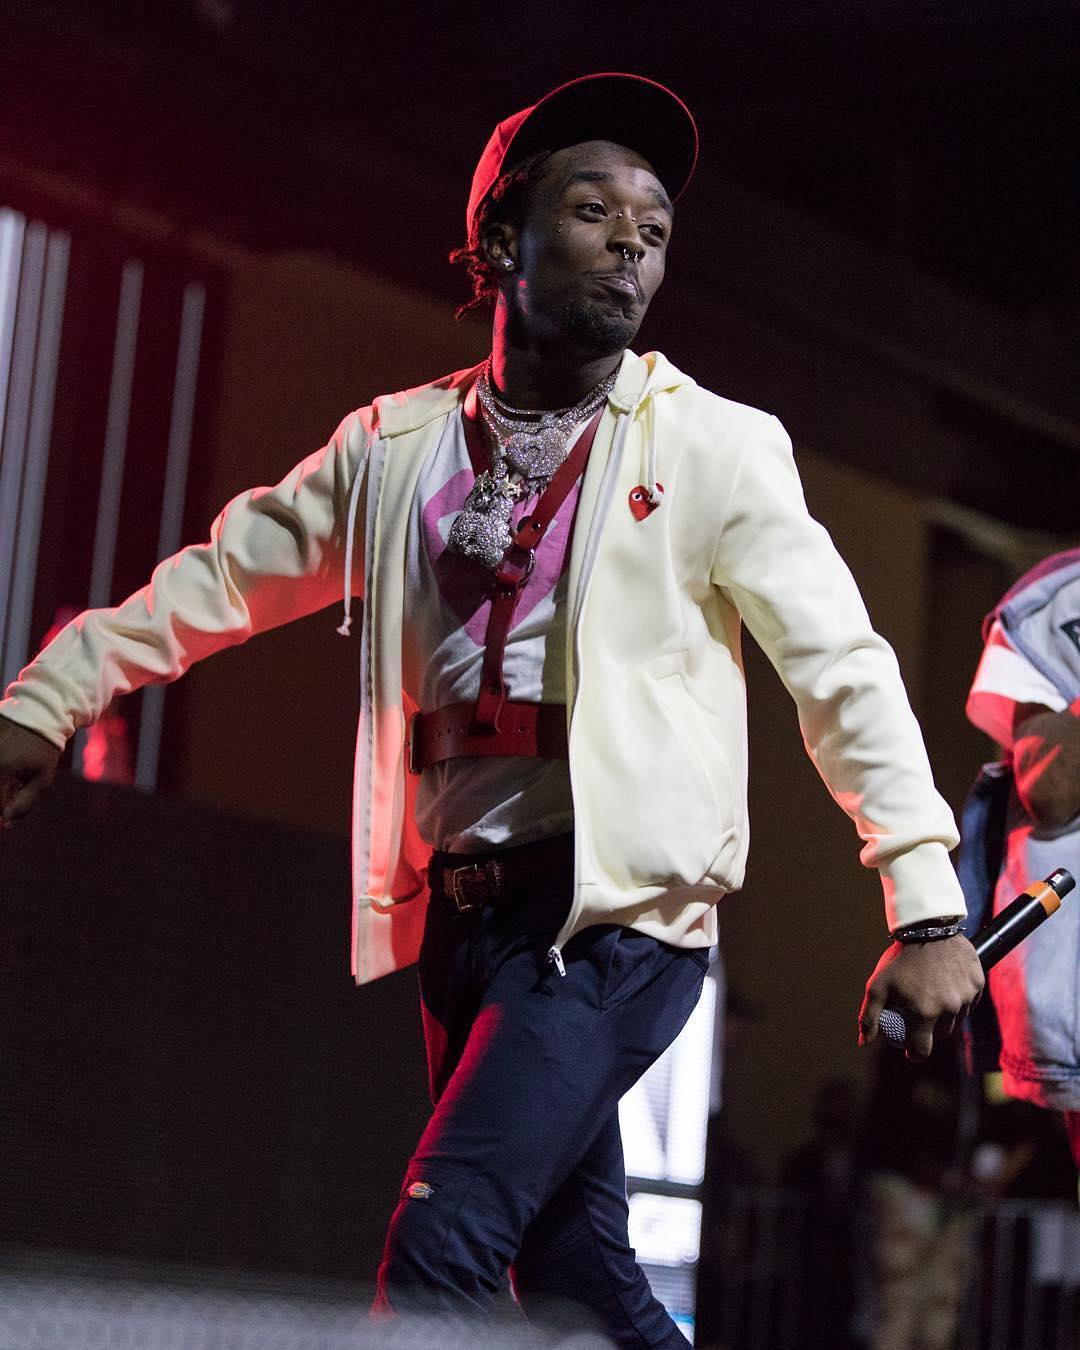 SPOTTED: Lil Uzi Vert Performs at ComplexCon Rockin' Comme des Garçons and Dickies